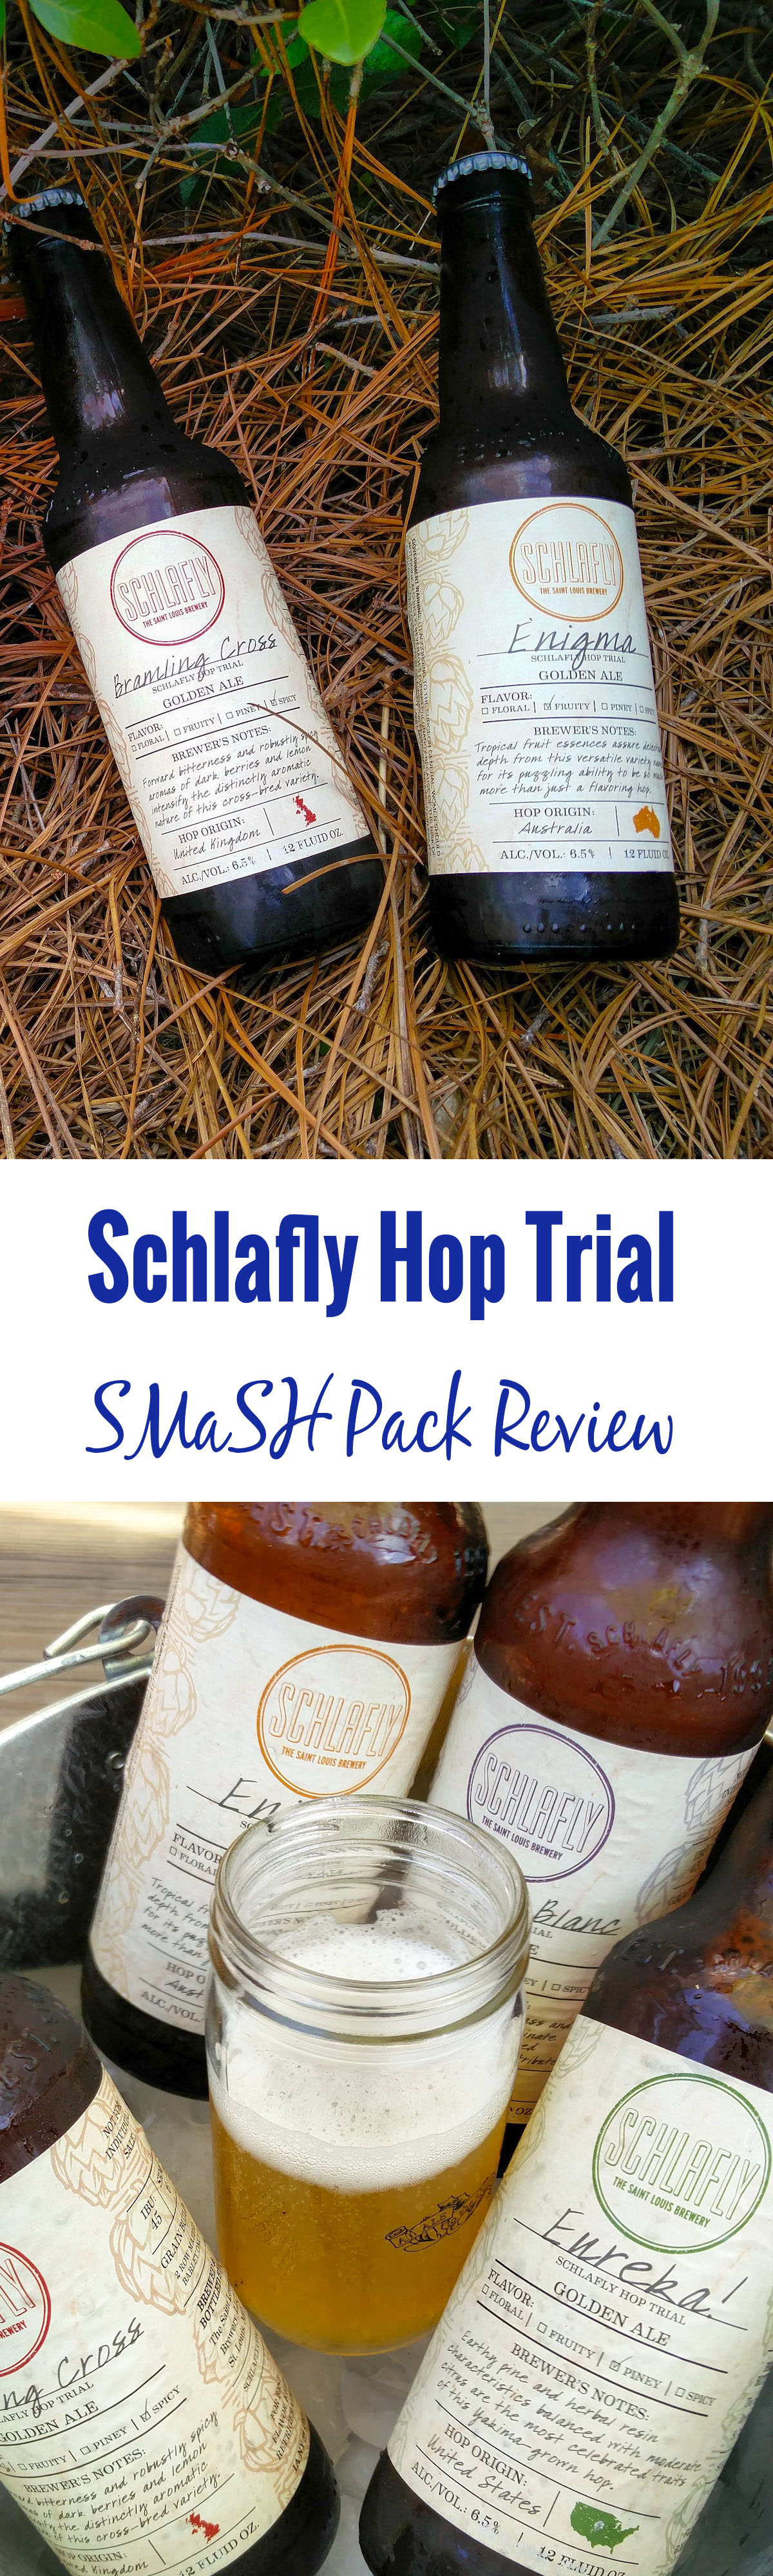 Schlafly Beer recently released a single malt and single hop experimental 12-pack. It's all kinds of delicious. Buy your Schlafly Hop Trial SMaSH Pack today!